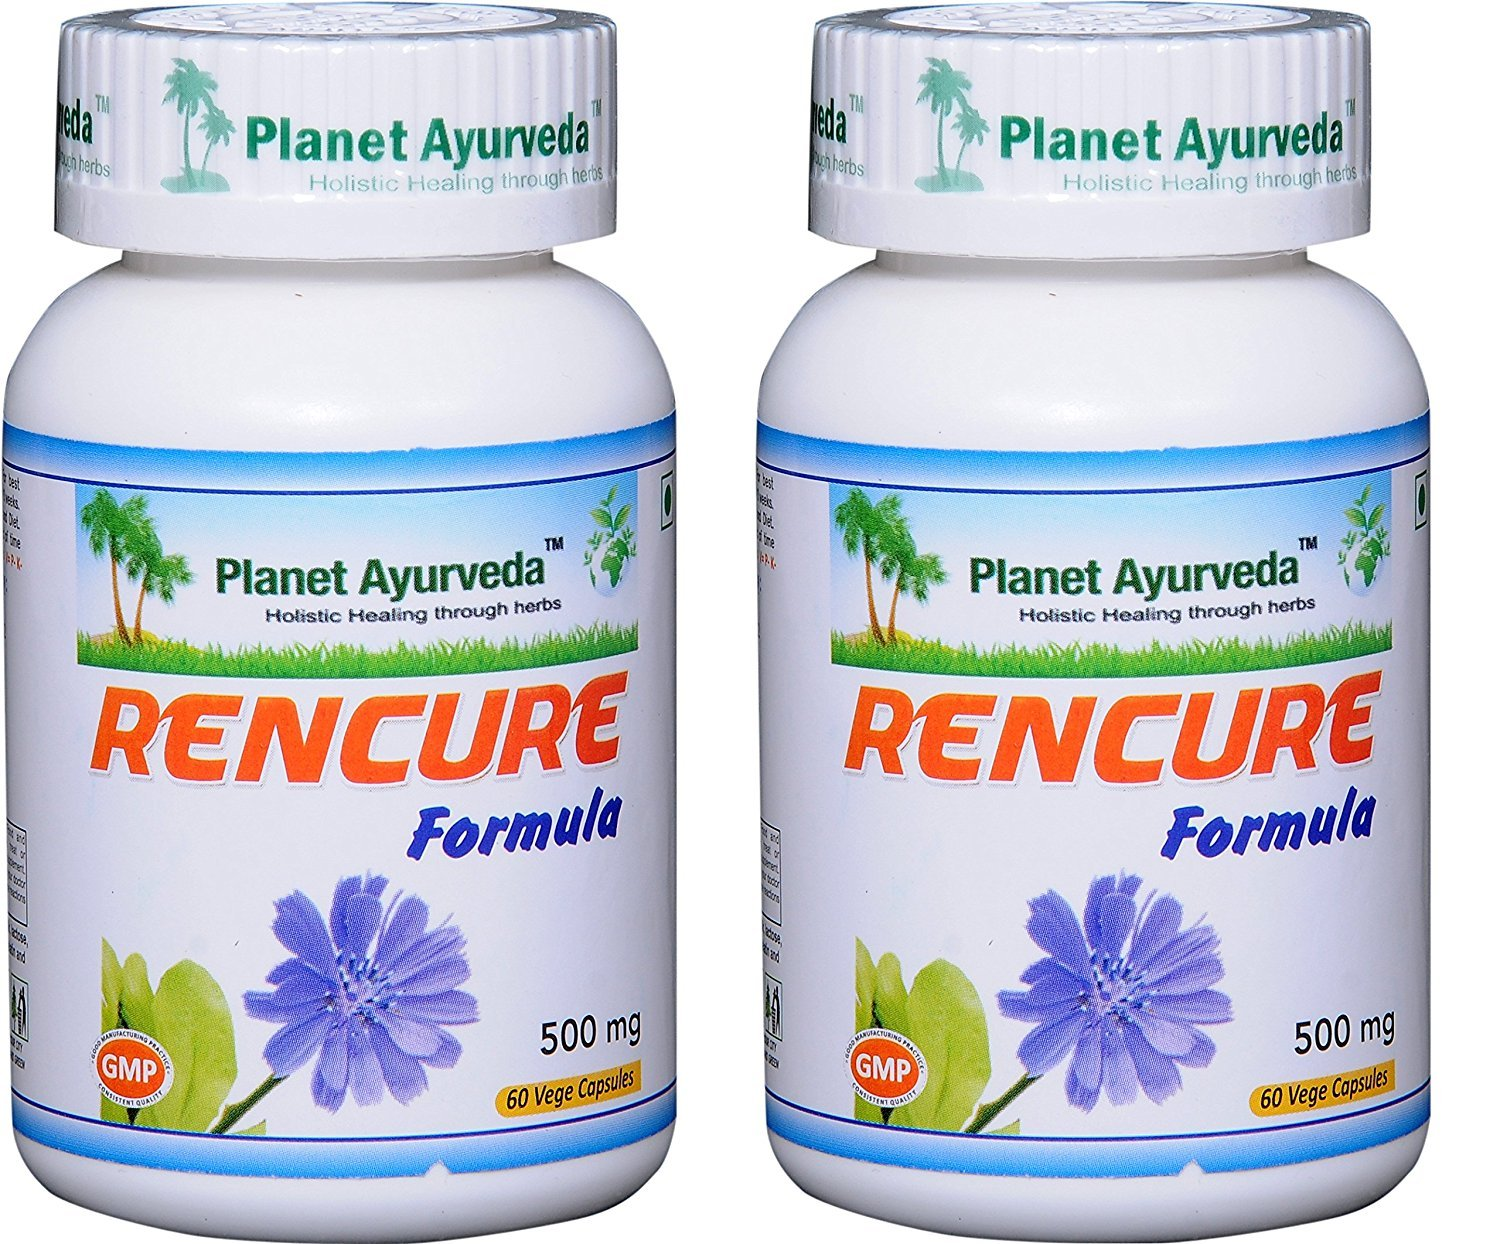 Rencure Formula - Natural Kidney Supplement - 2 Bottles (Each 60 Capsules, 500mg) - Planet Ayurveda